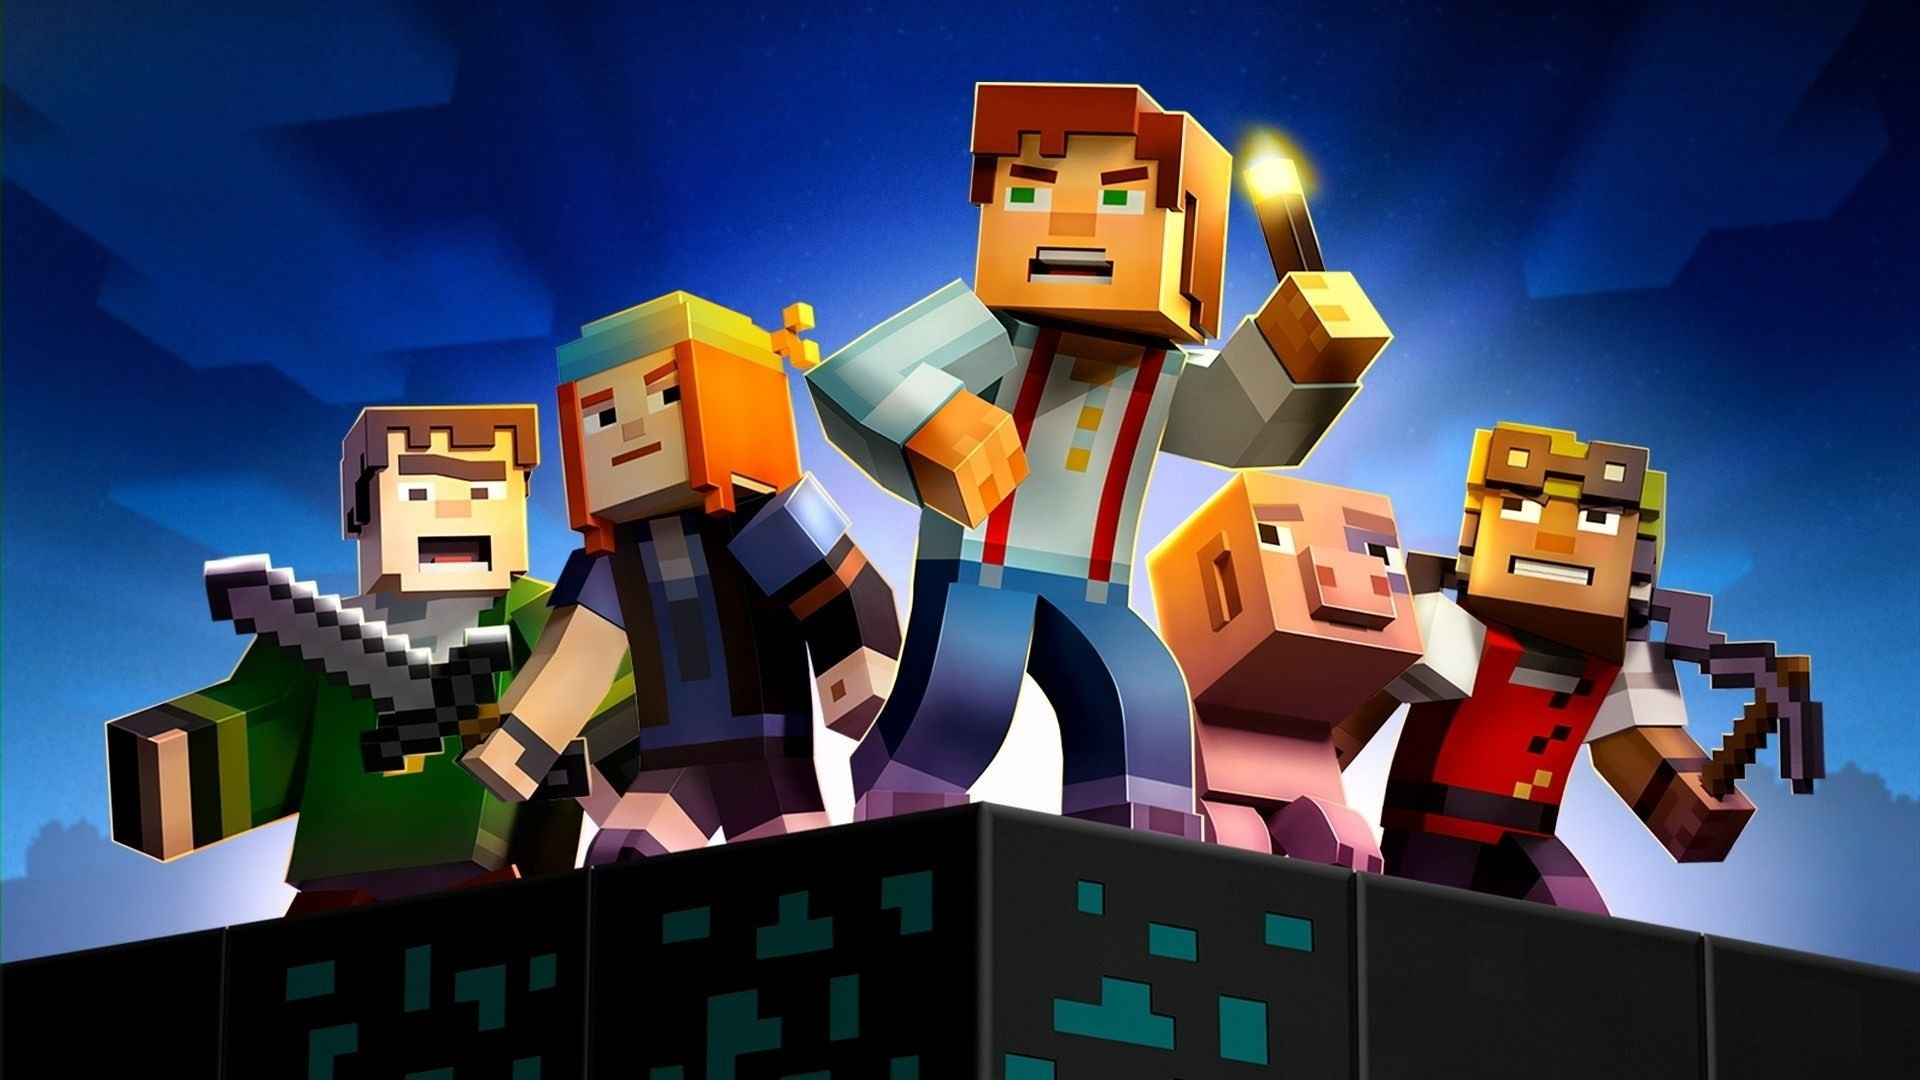 Minecraft story mode wallpapers 96 images - Minecraft story mode wallpaper ...